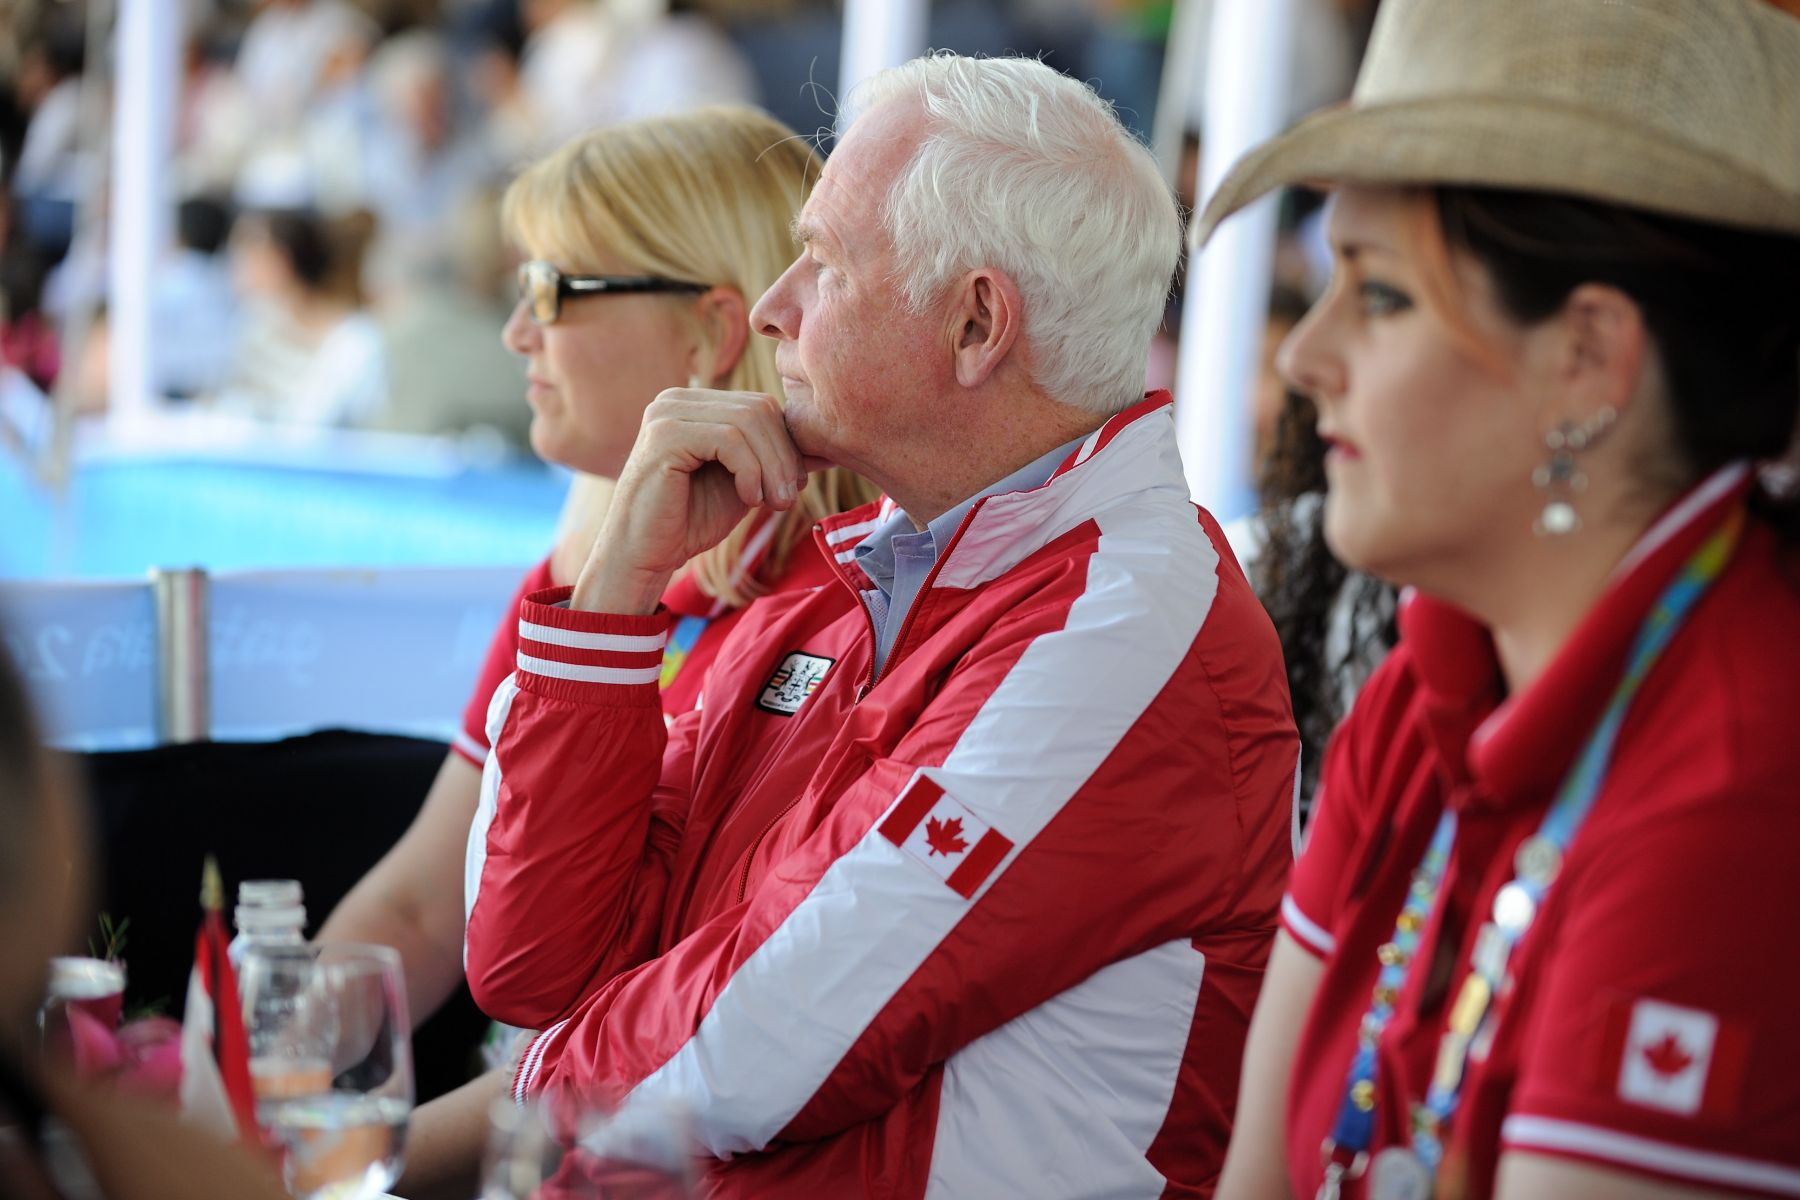 He watched very attentively as Canadian athletes performed in the finals.